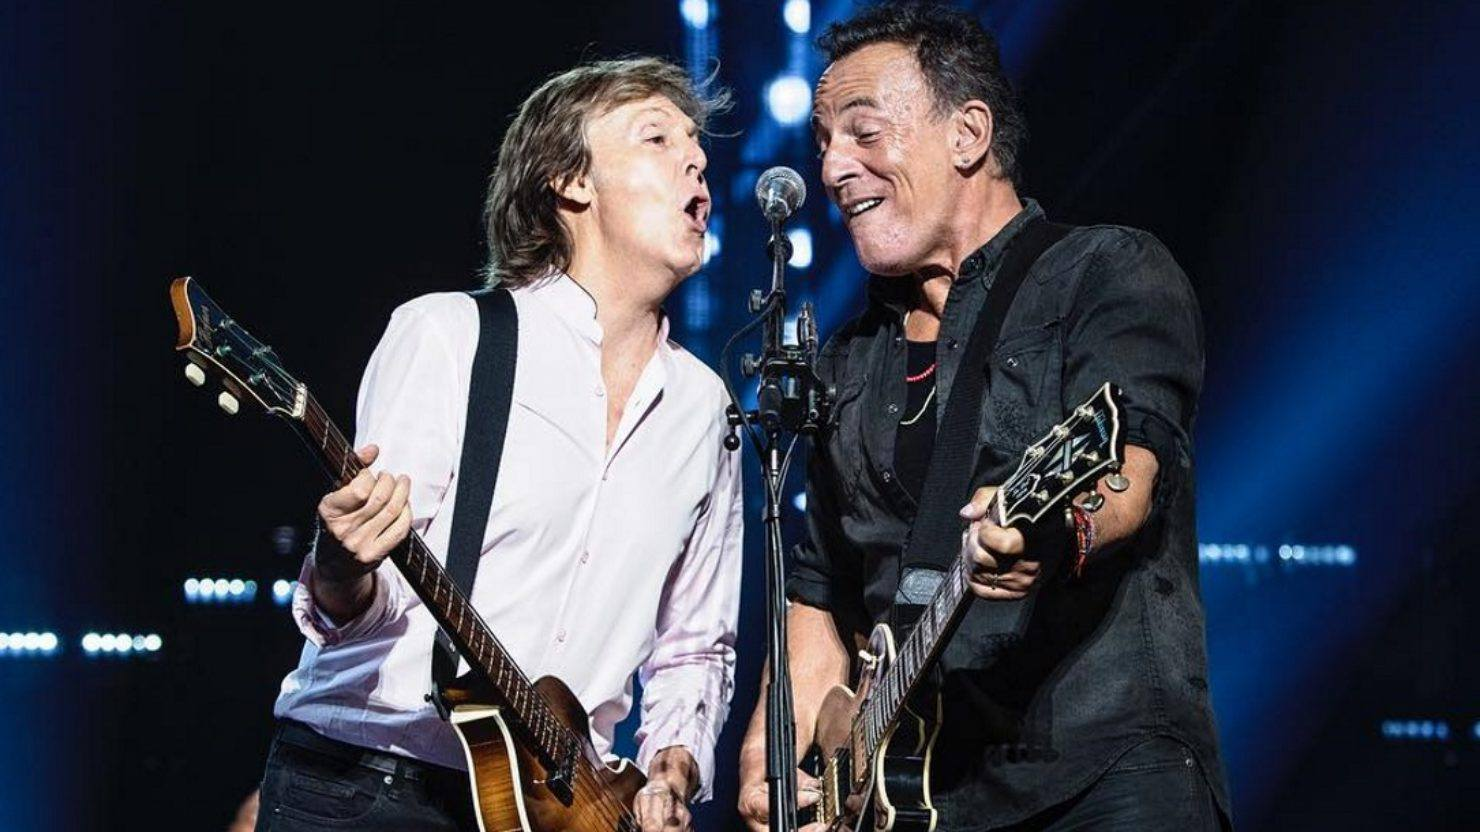 Paul Mccartney Welcomes Bruce Springsteen At Madison Square Garden